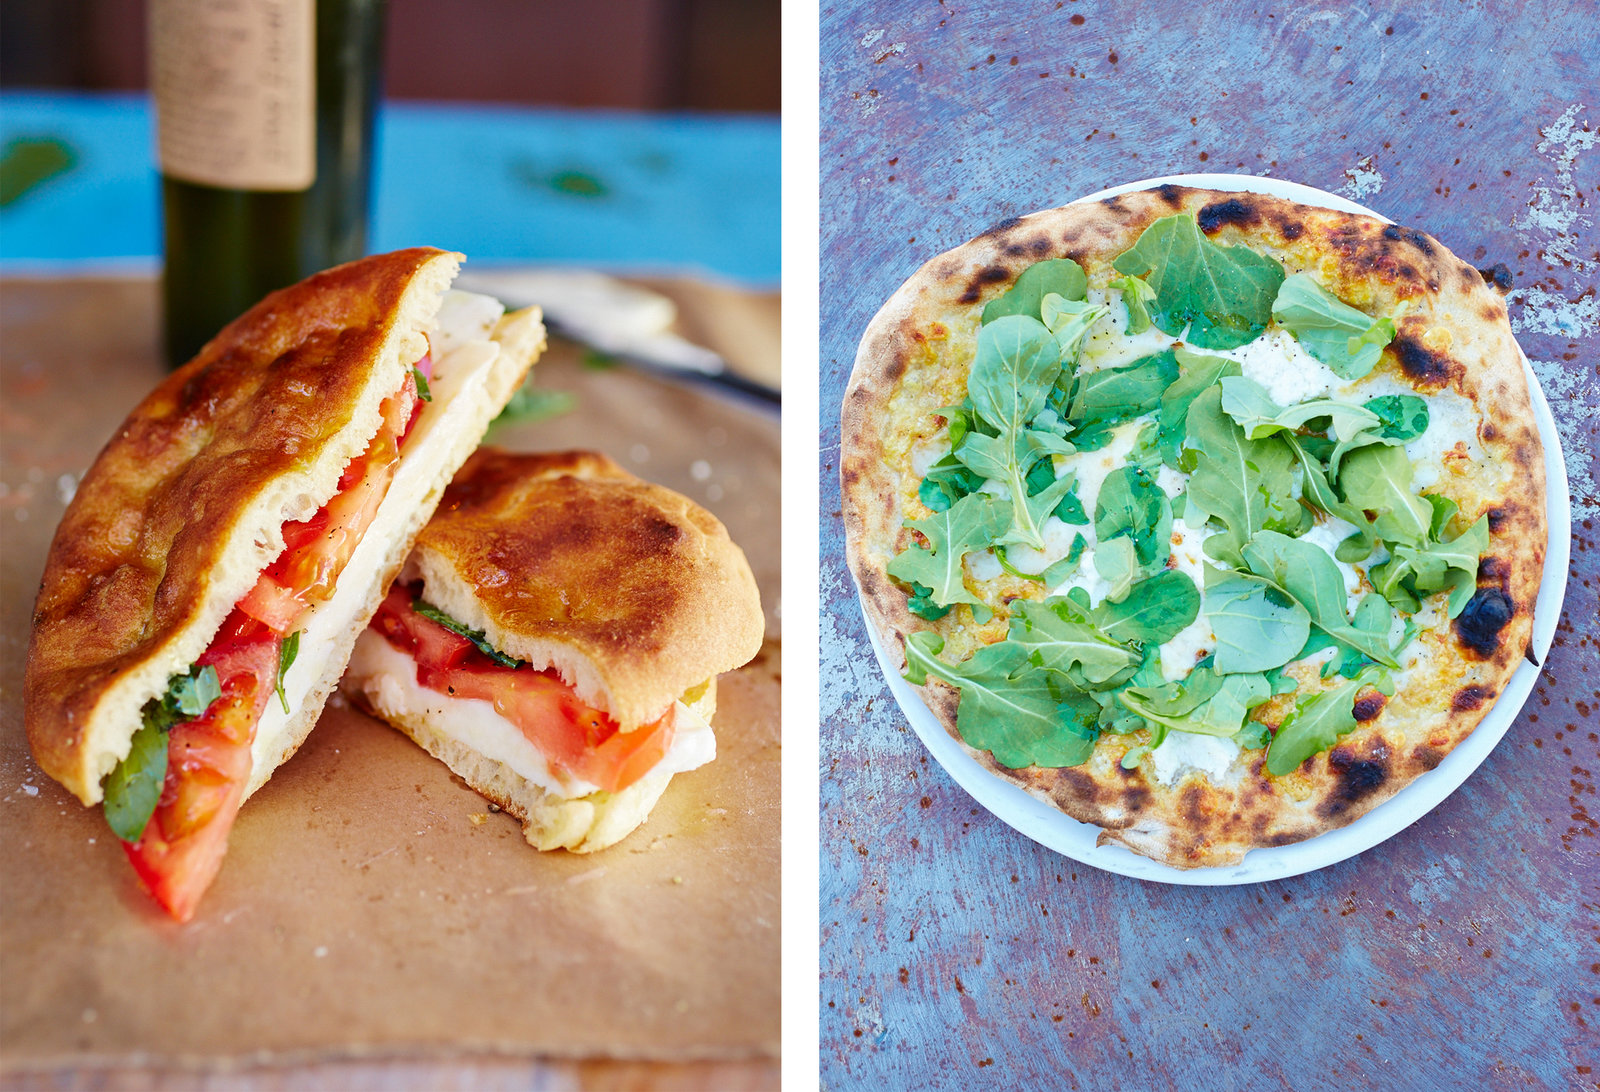 Left: mozzarella and tomato sandwich. Right: pizza biancoverde.